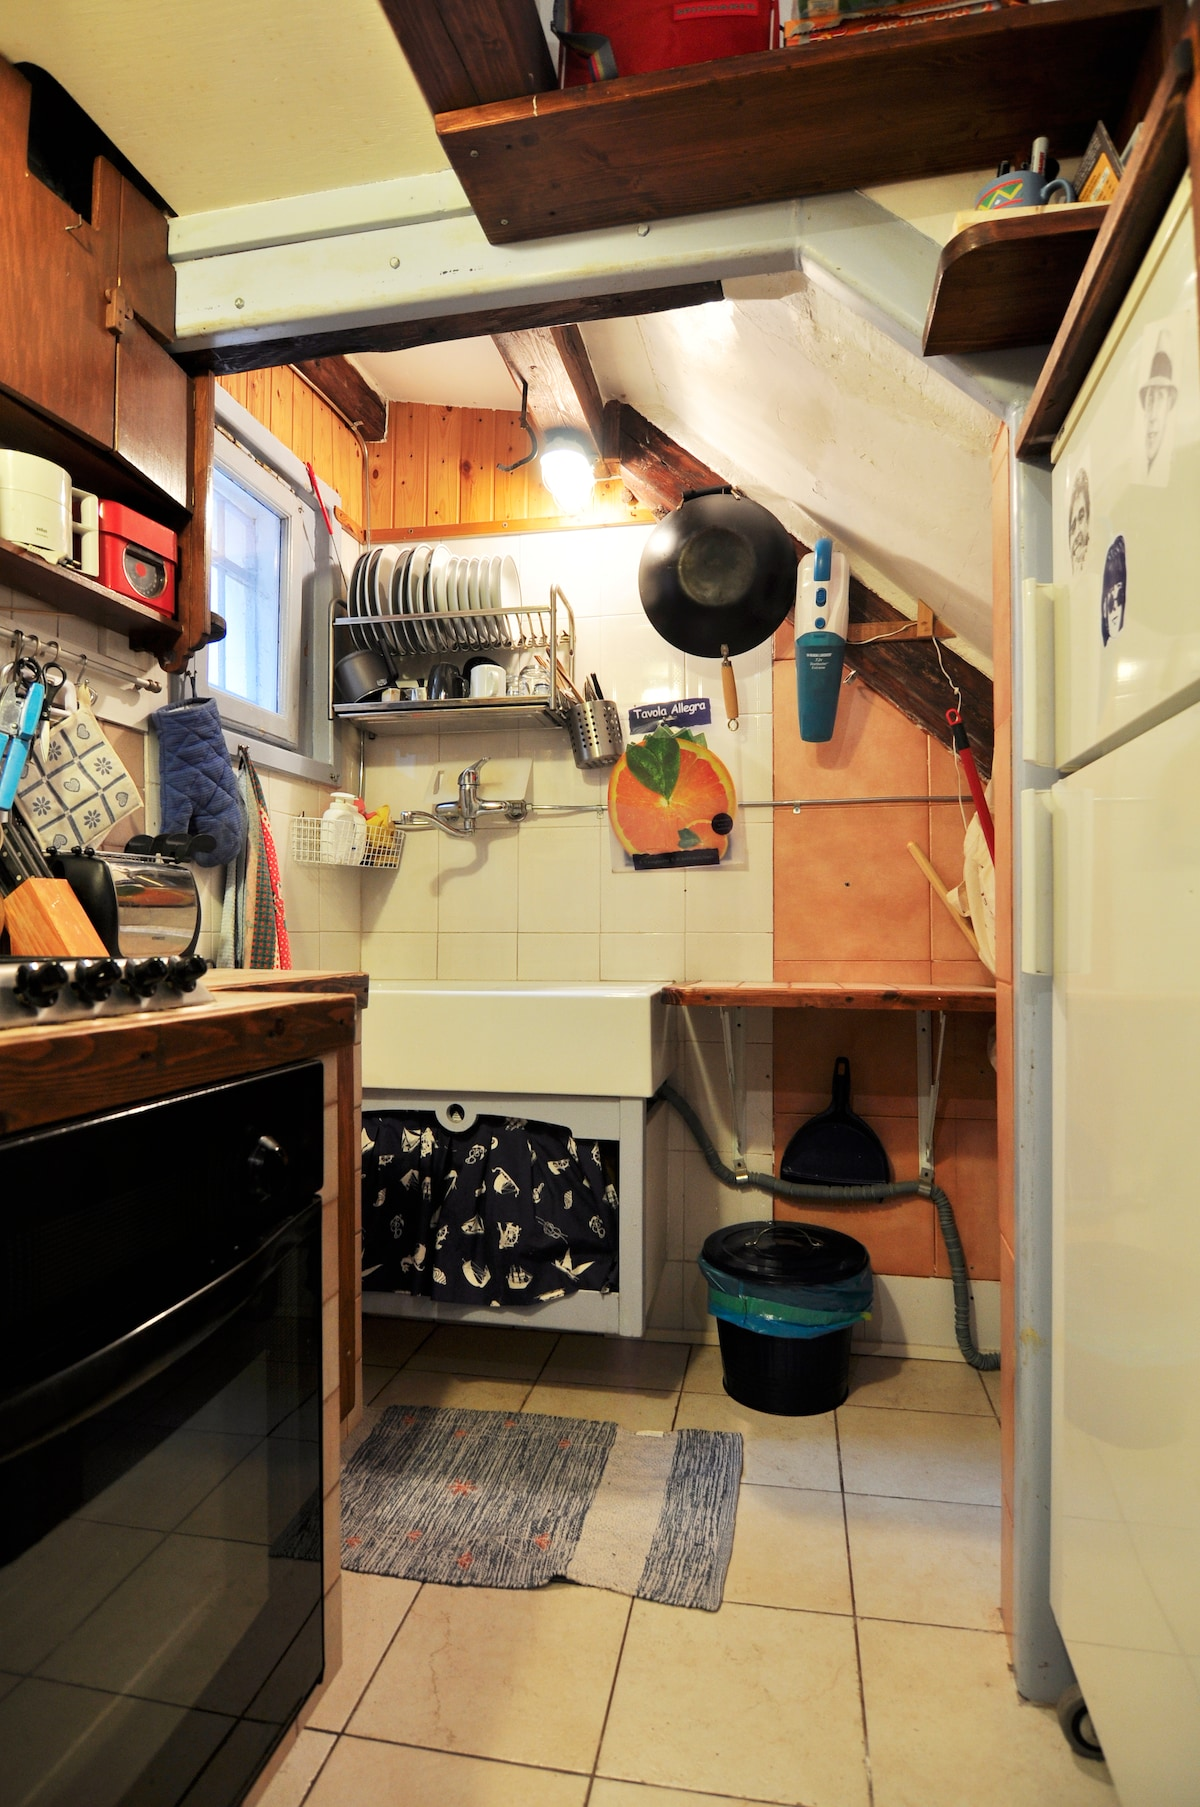 Fully Equipped kitchen with 4 fire-points stove, oven, washing machine, fridge, toaster and squeezer